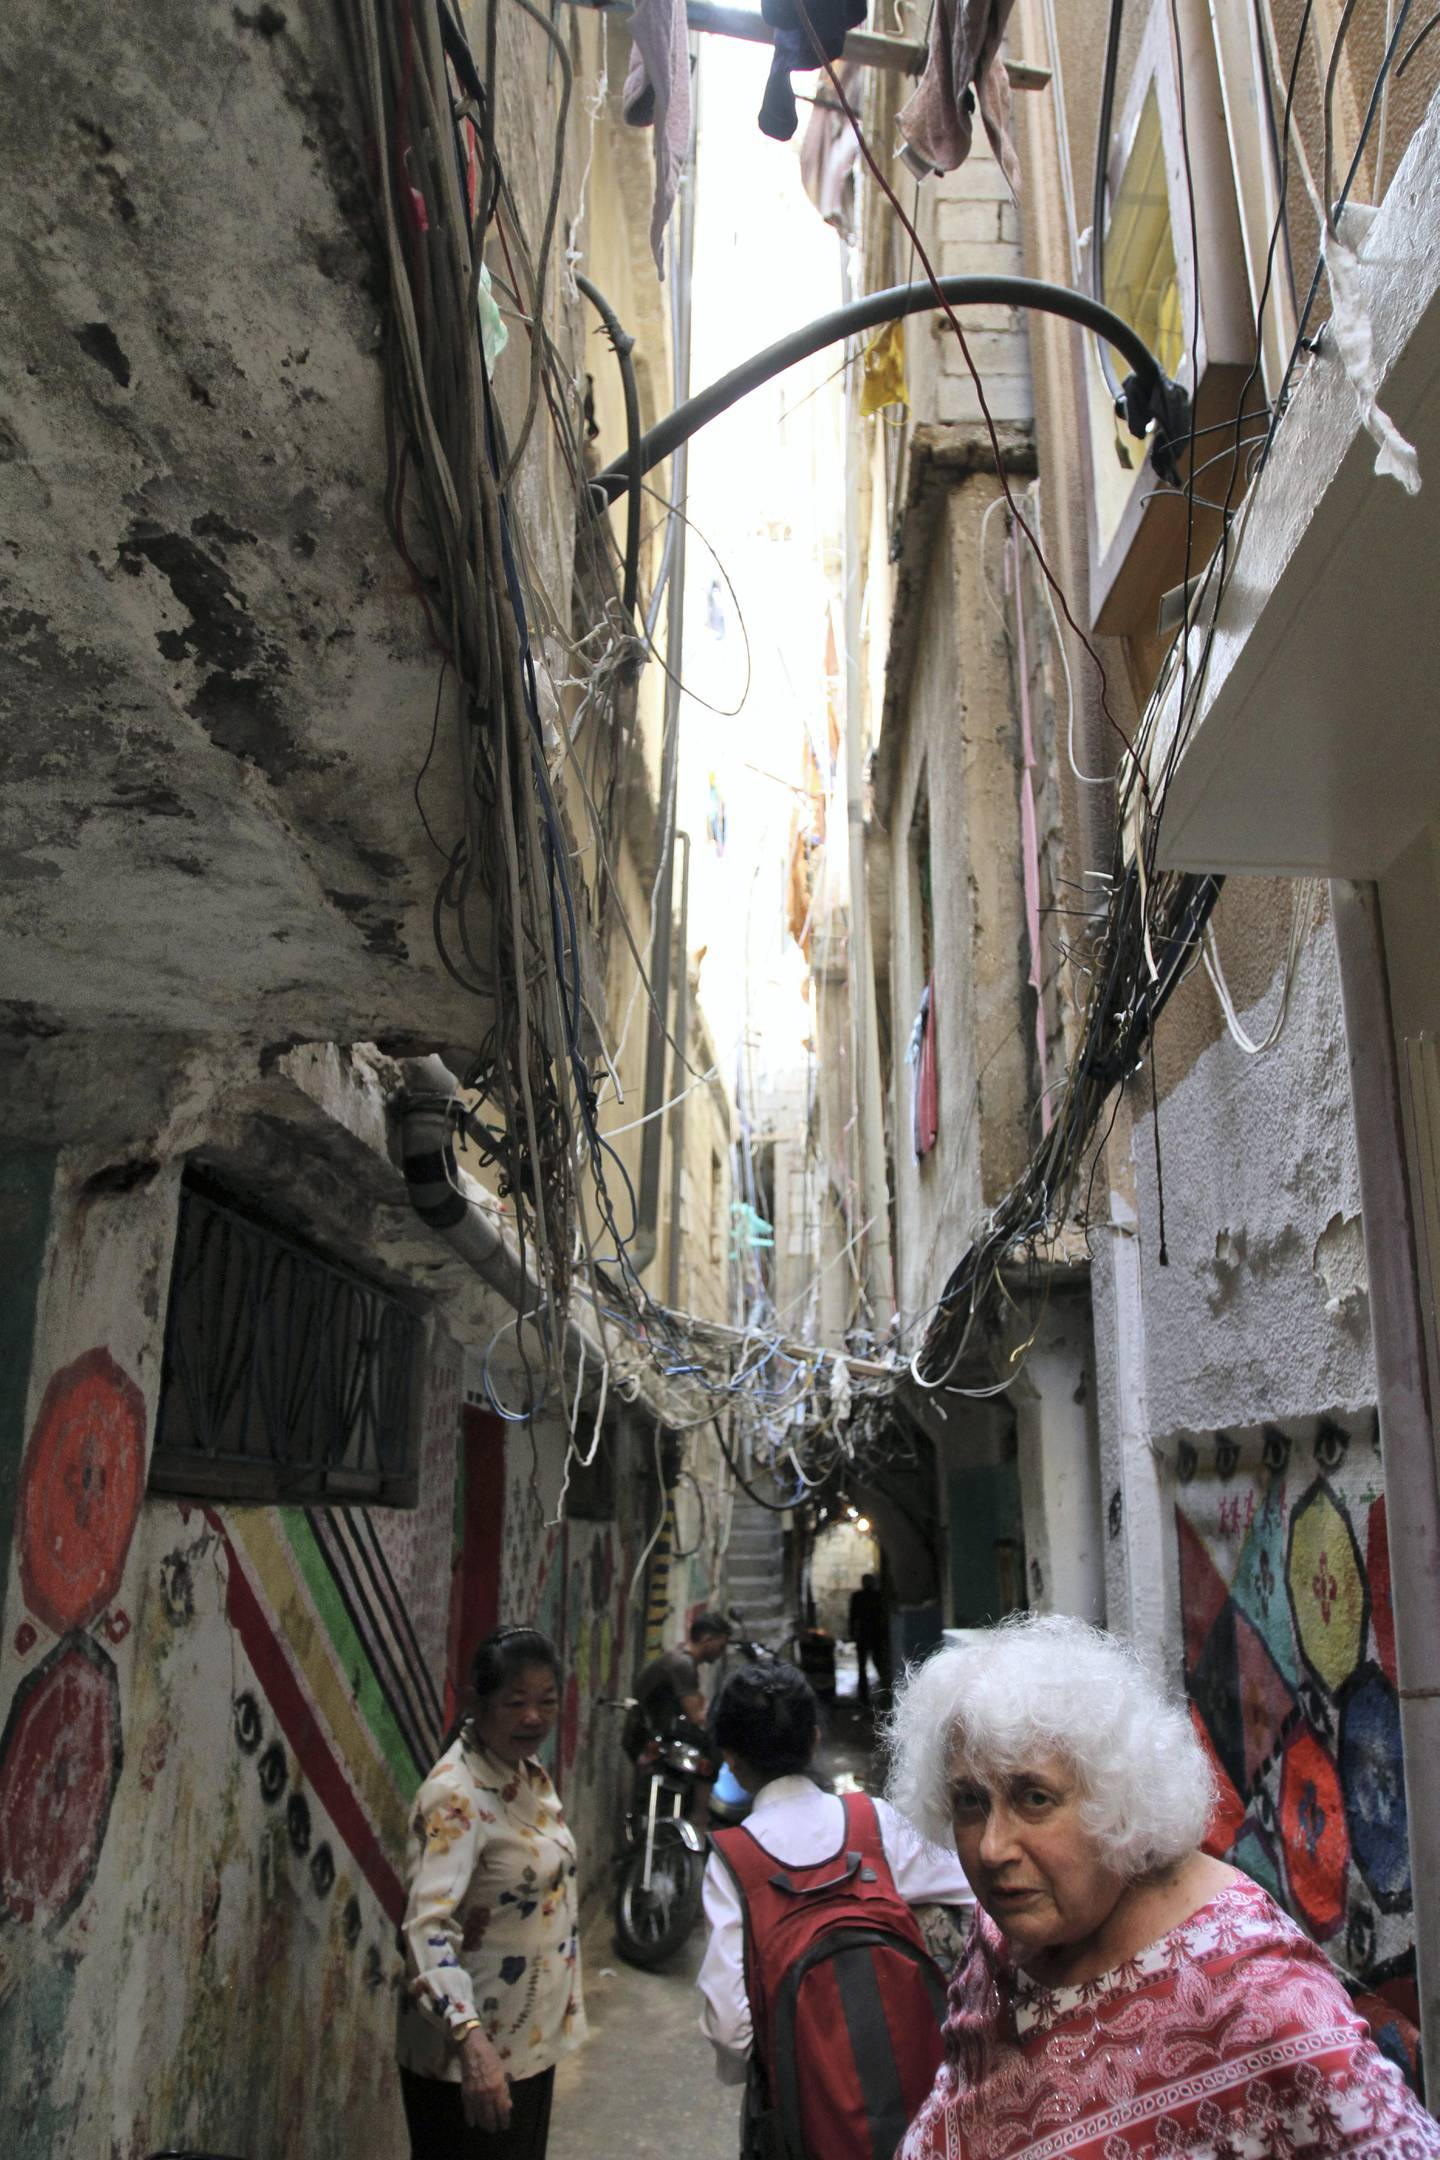 Ellen Siegel, who is from Washington DC, traveled to the Beirut neighborhood of Shatila to mark the anniversary of the Sabra and Shatila massacre in 1982. Siegel worked at Gaza Hospital in Shatila when the massacre took place and has visited every year to mark the anniversary for the last 17 years. Sept. 22, 2017.